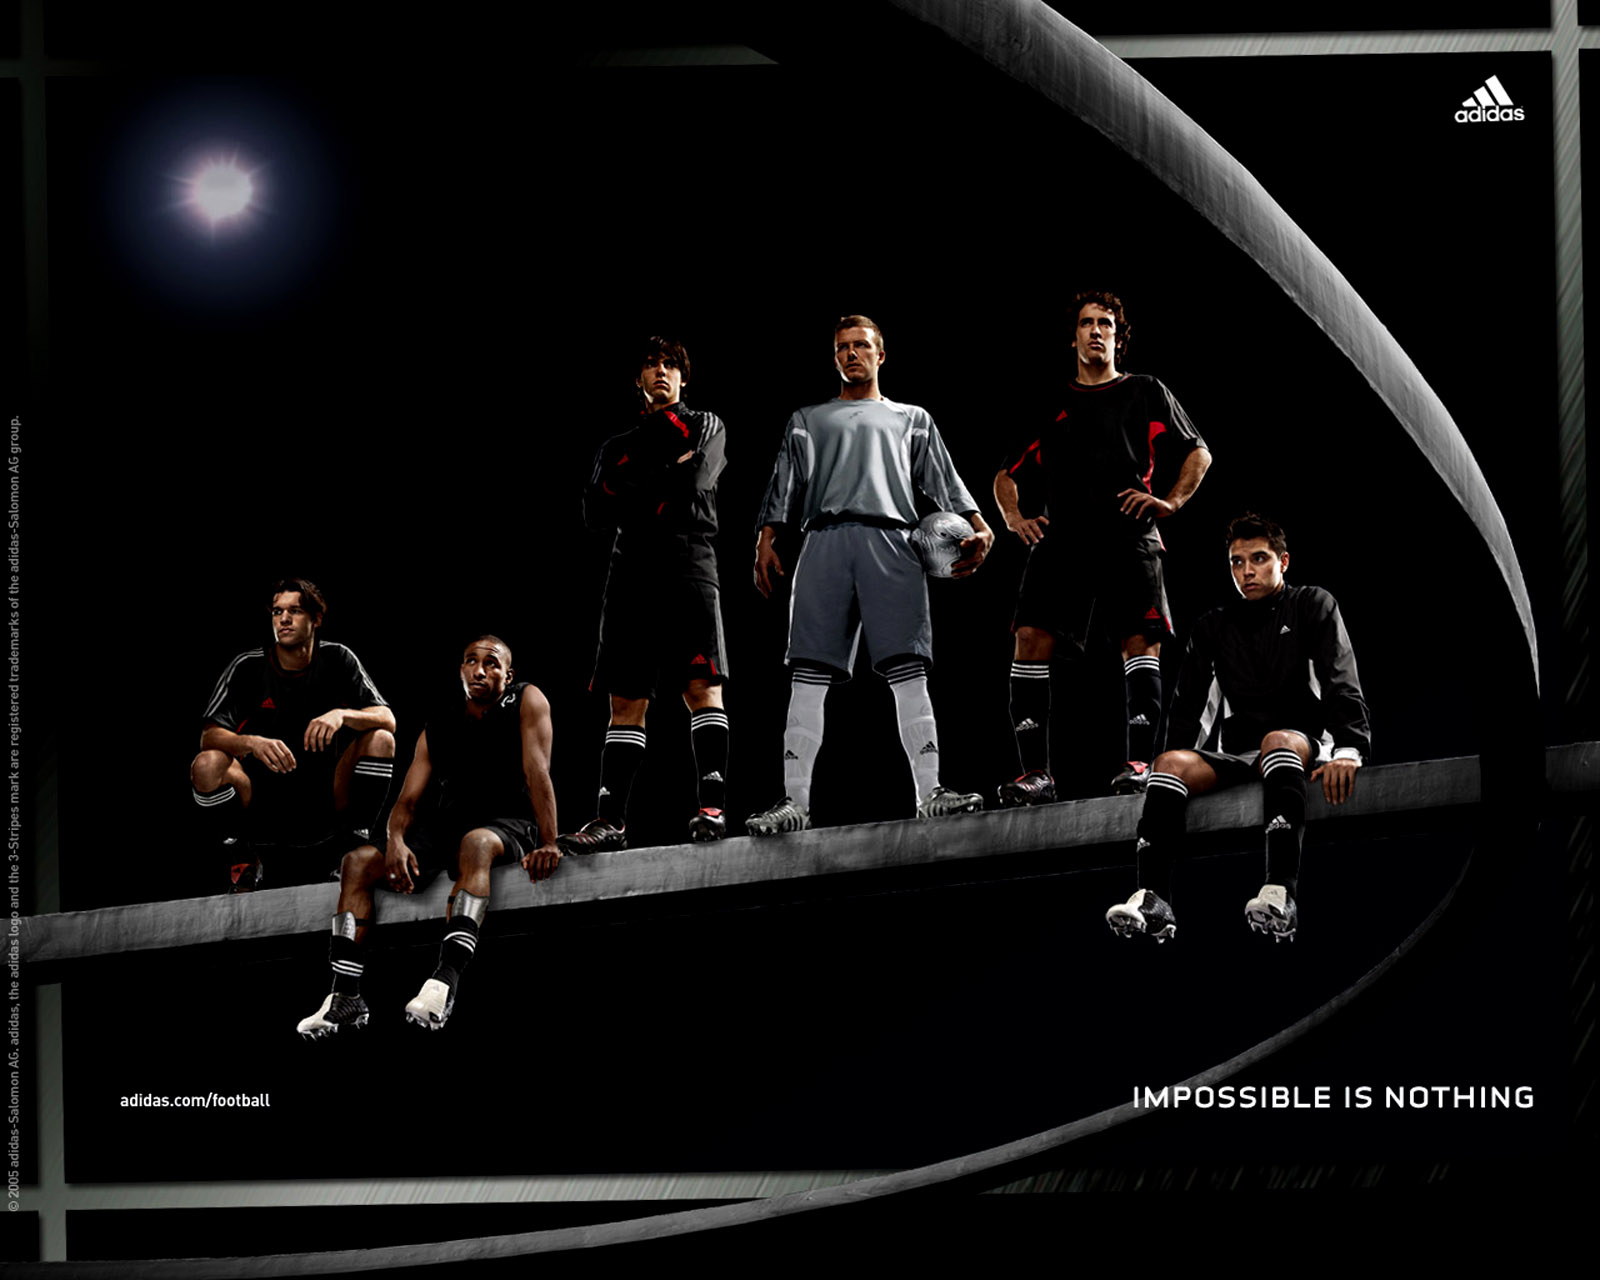 Adidas Impossible is Nothing Ads HD Wallpapers | Desktop ...